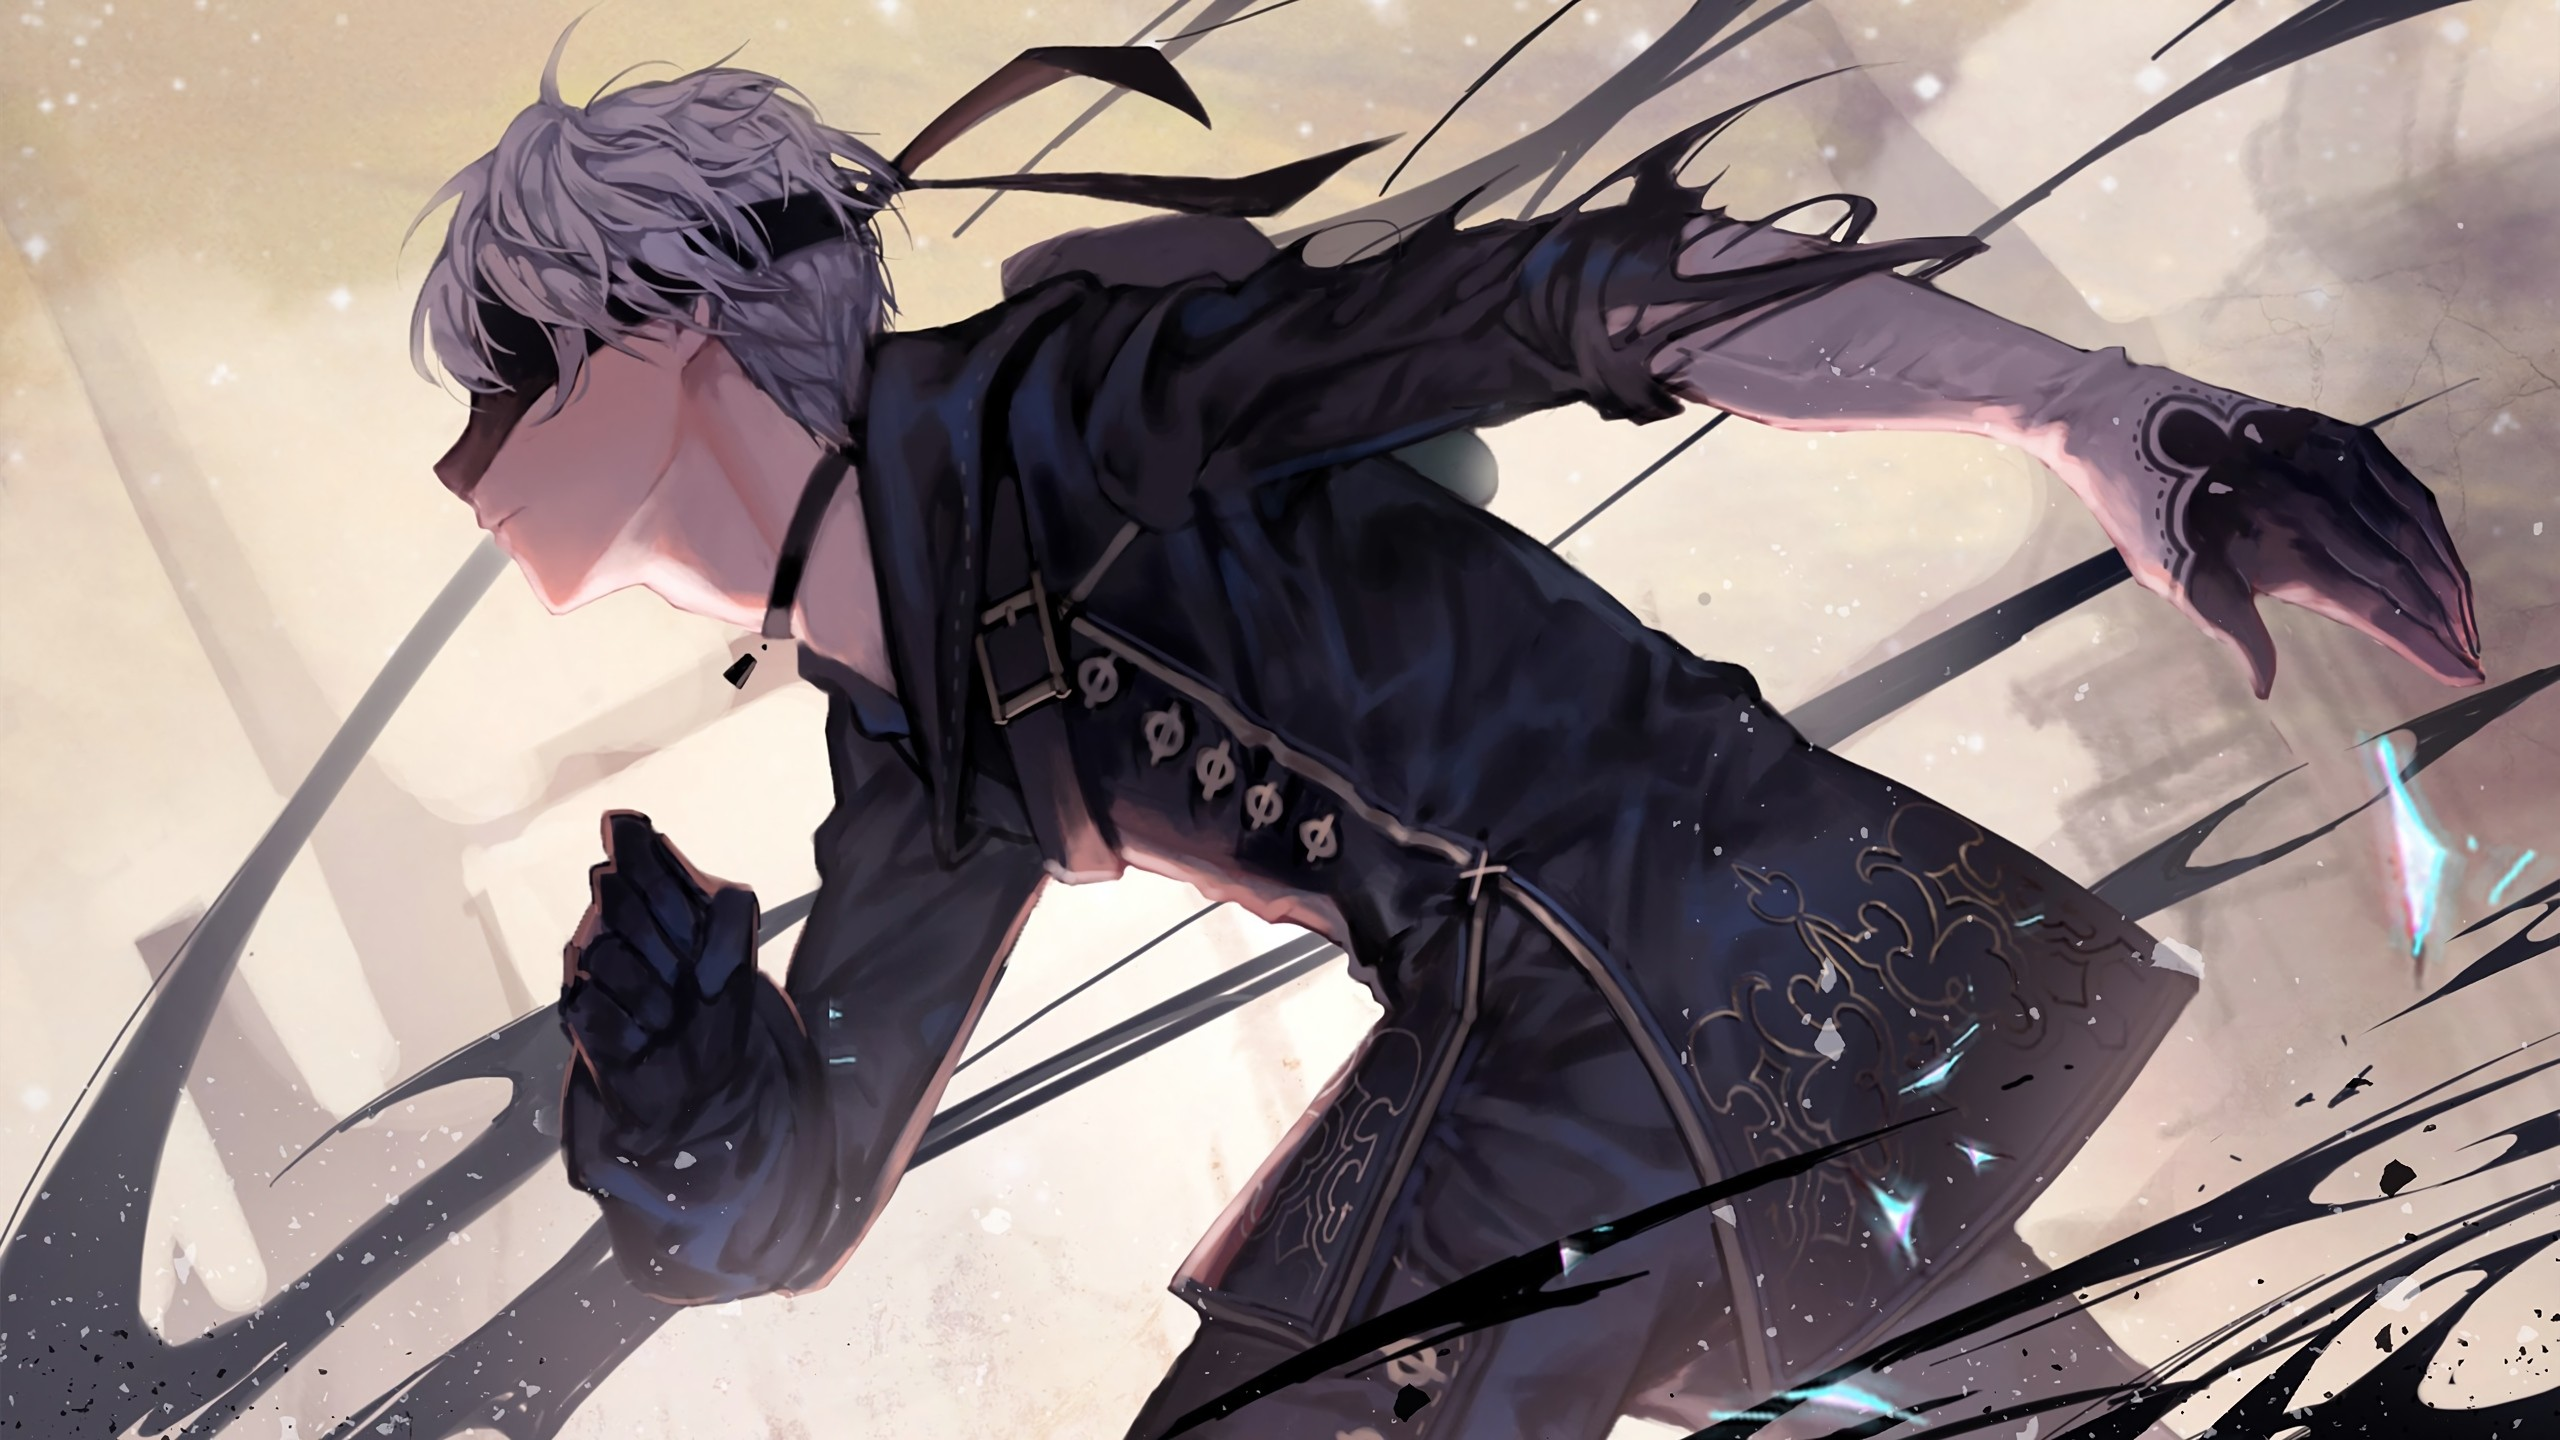 The Blind Blade || Keyth ID 791603-nier-replicant-wallpaper-2560x1440-for-iphone-6